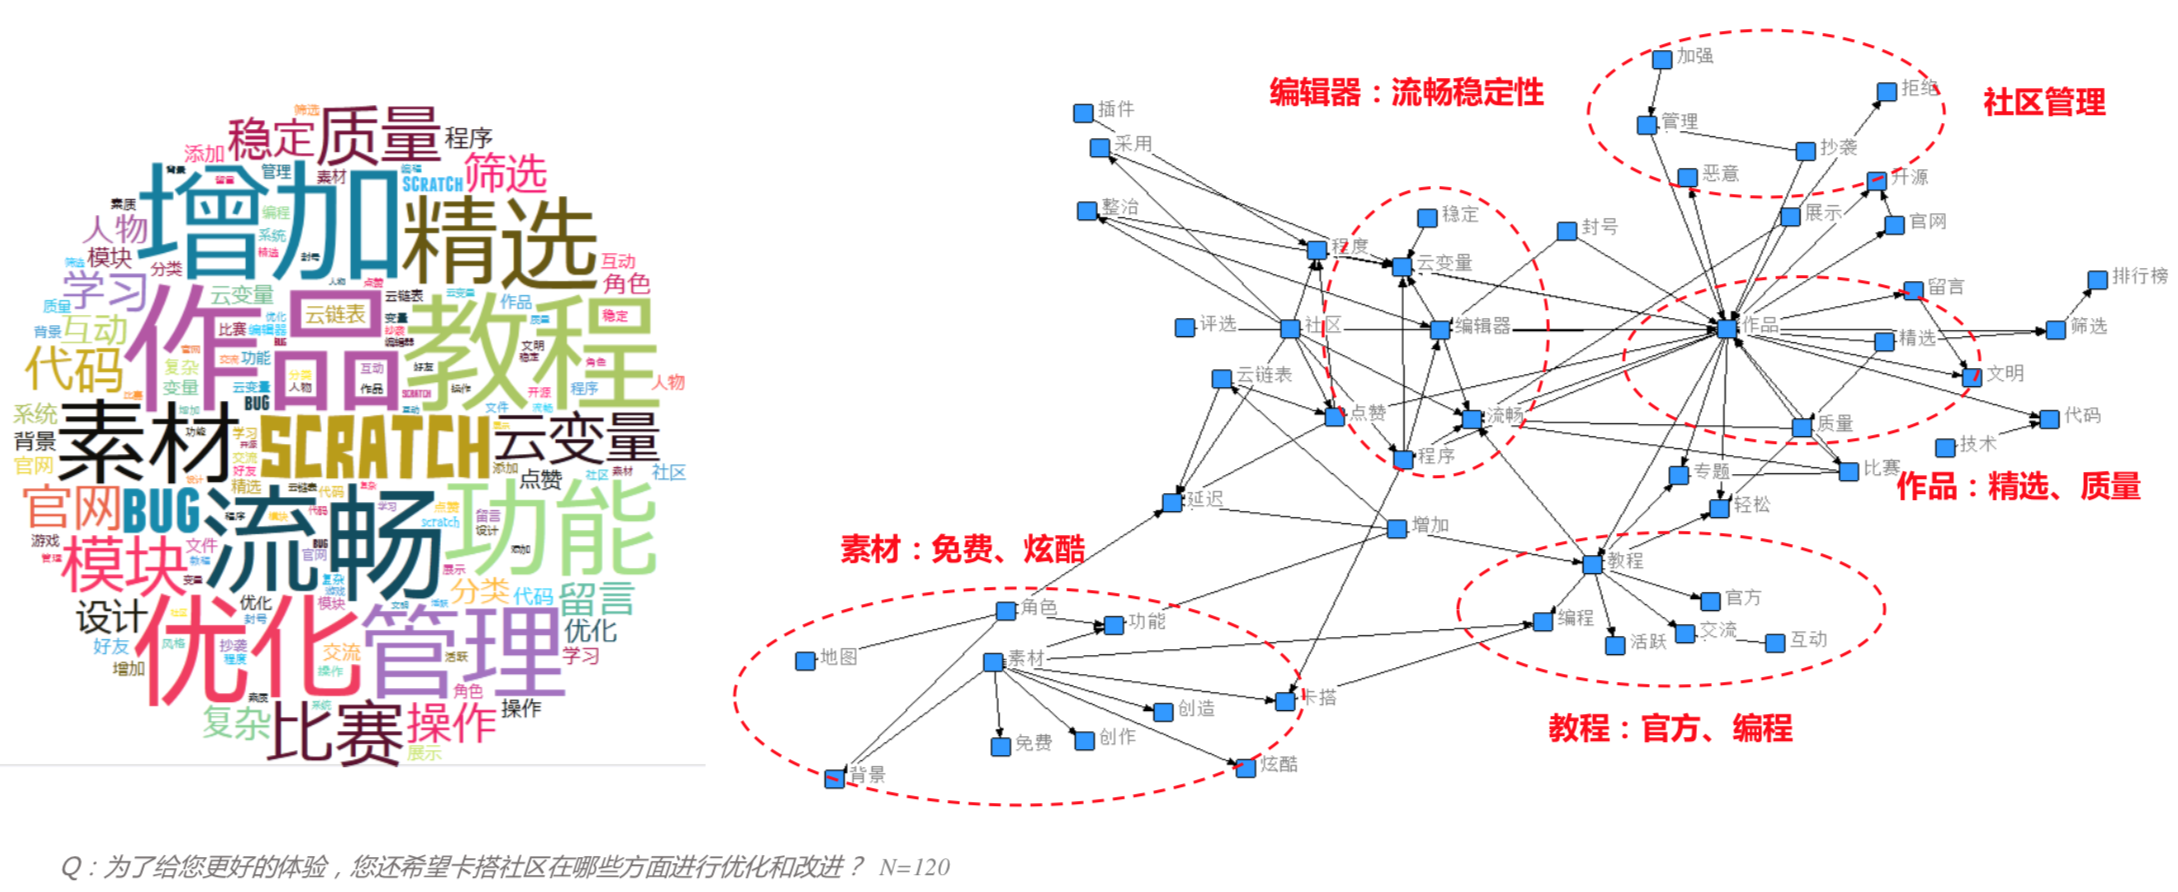 """Figure 1: Data visualization shows high demand for more FREE and COOL Sprites. Left: """"素材 (Sprite)"""" on the left side of """"SCRATCH"""", """"教程 (Tutorial)"""" on the right top-corner of """"SCRATCH""""; Right: The circle on the left bottom corner shows the need for """"素材 (Sprites)"""""""